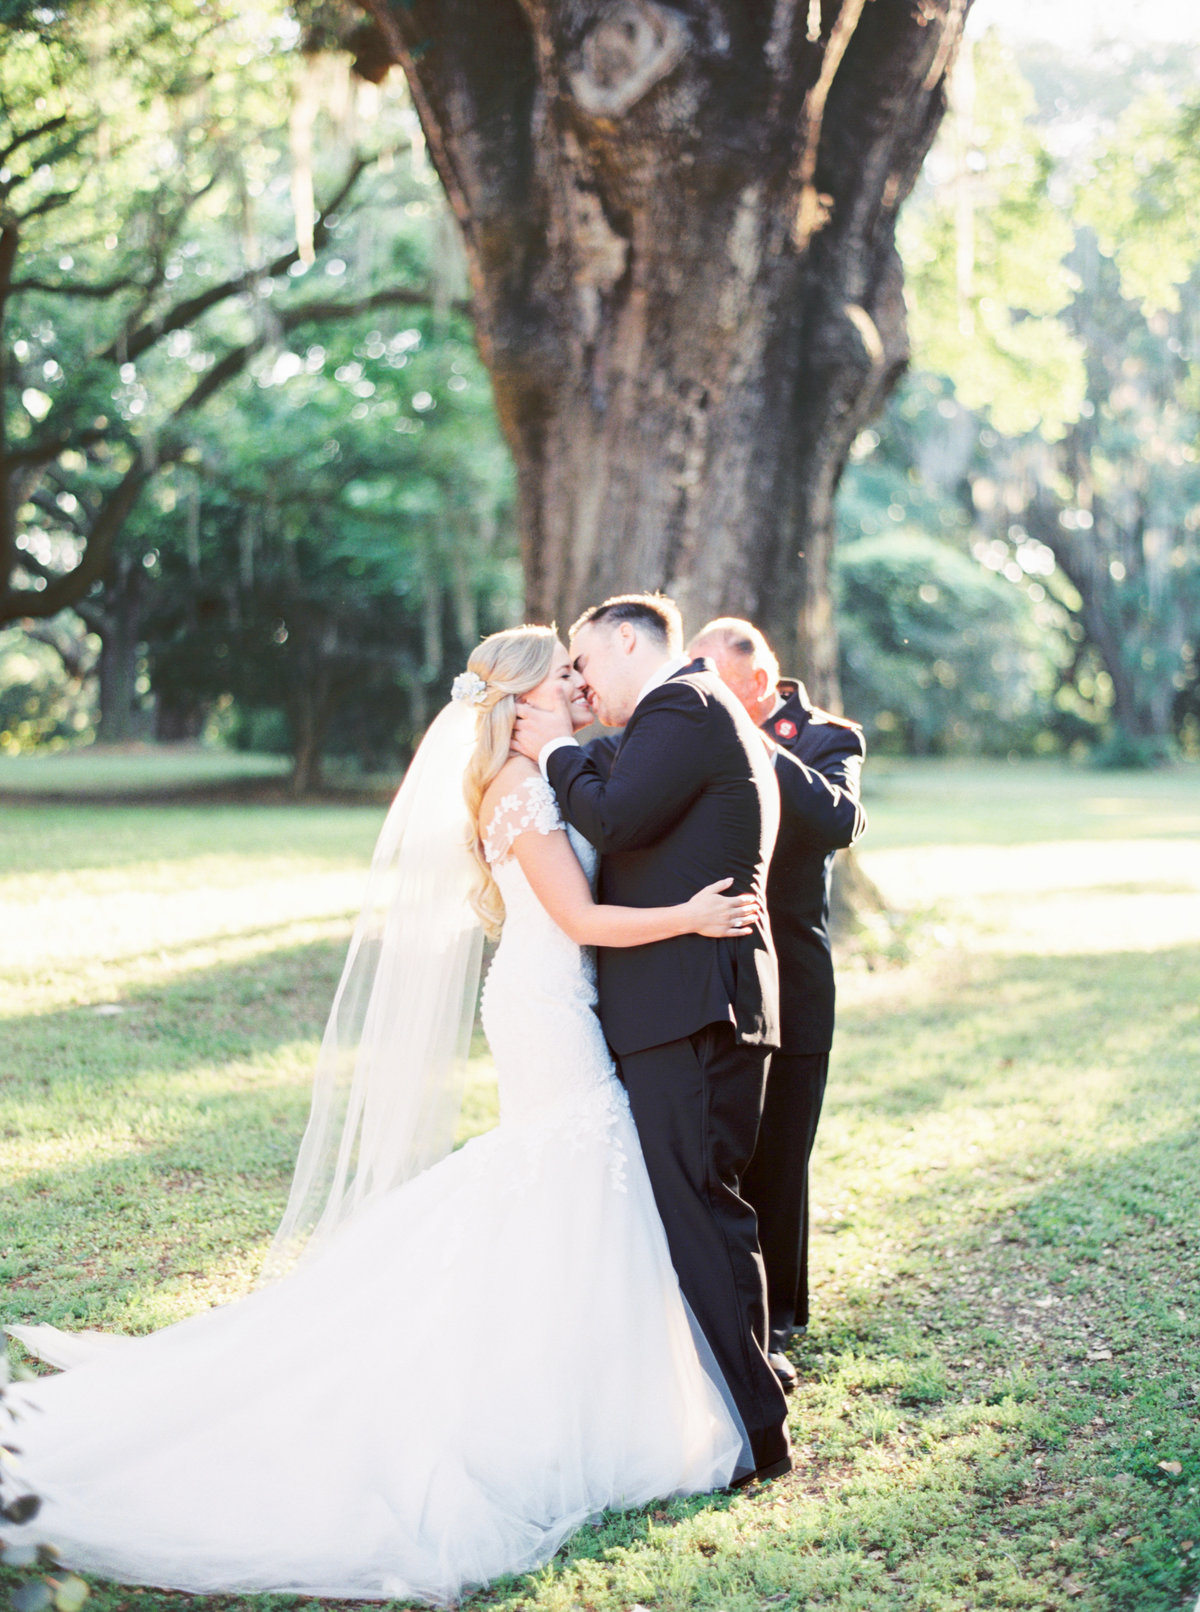 Charleston Wedding Photographer - Mary Claire Photography-8-2